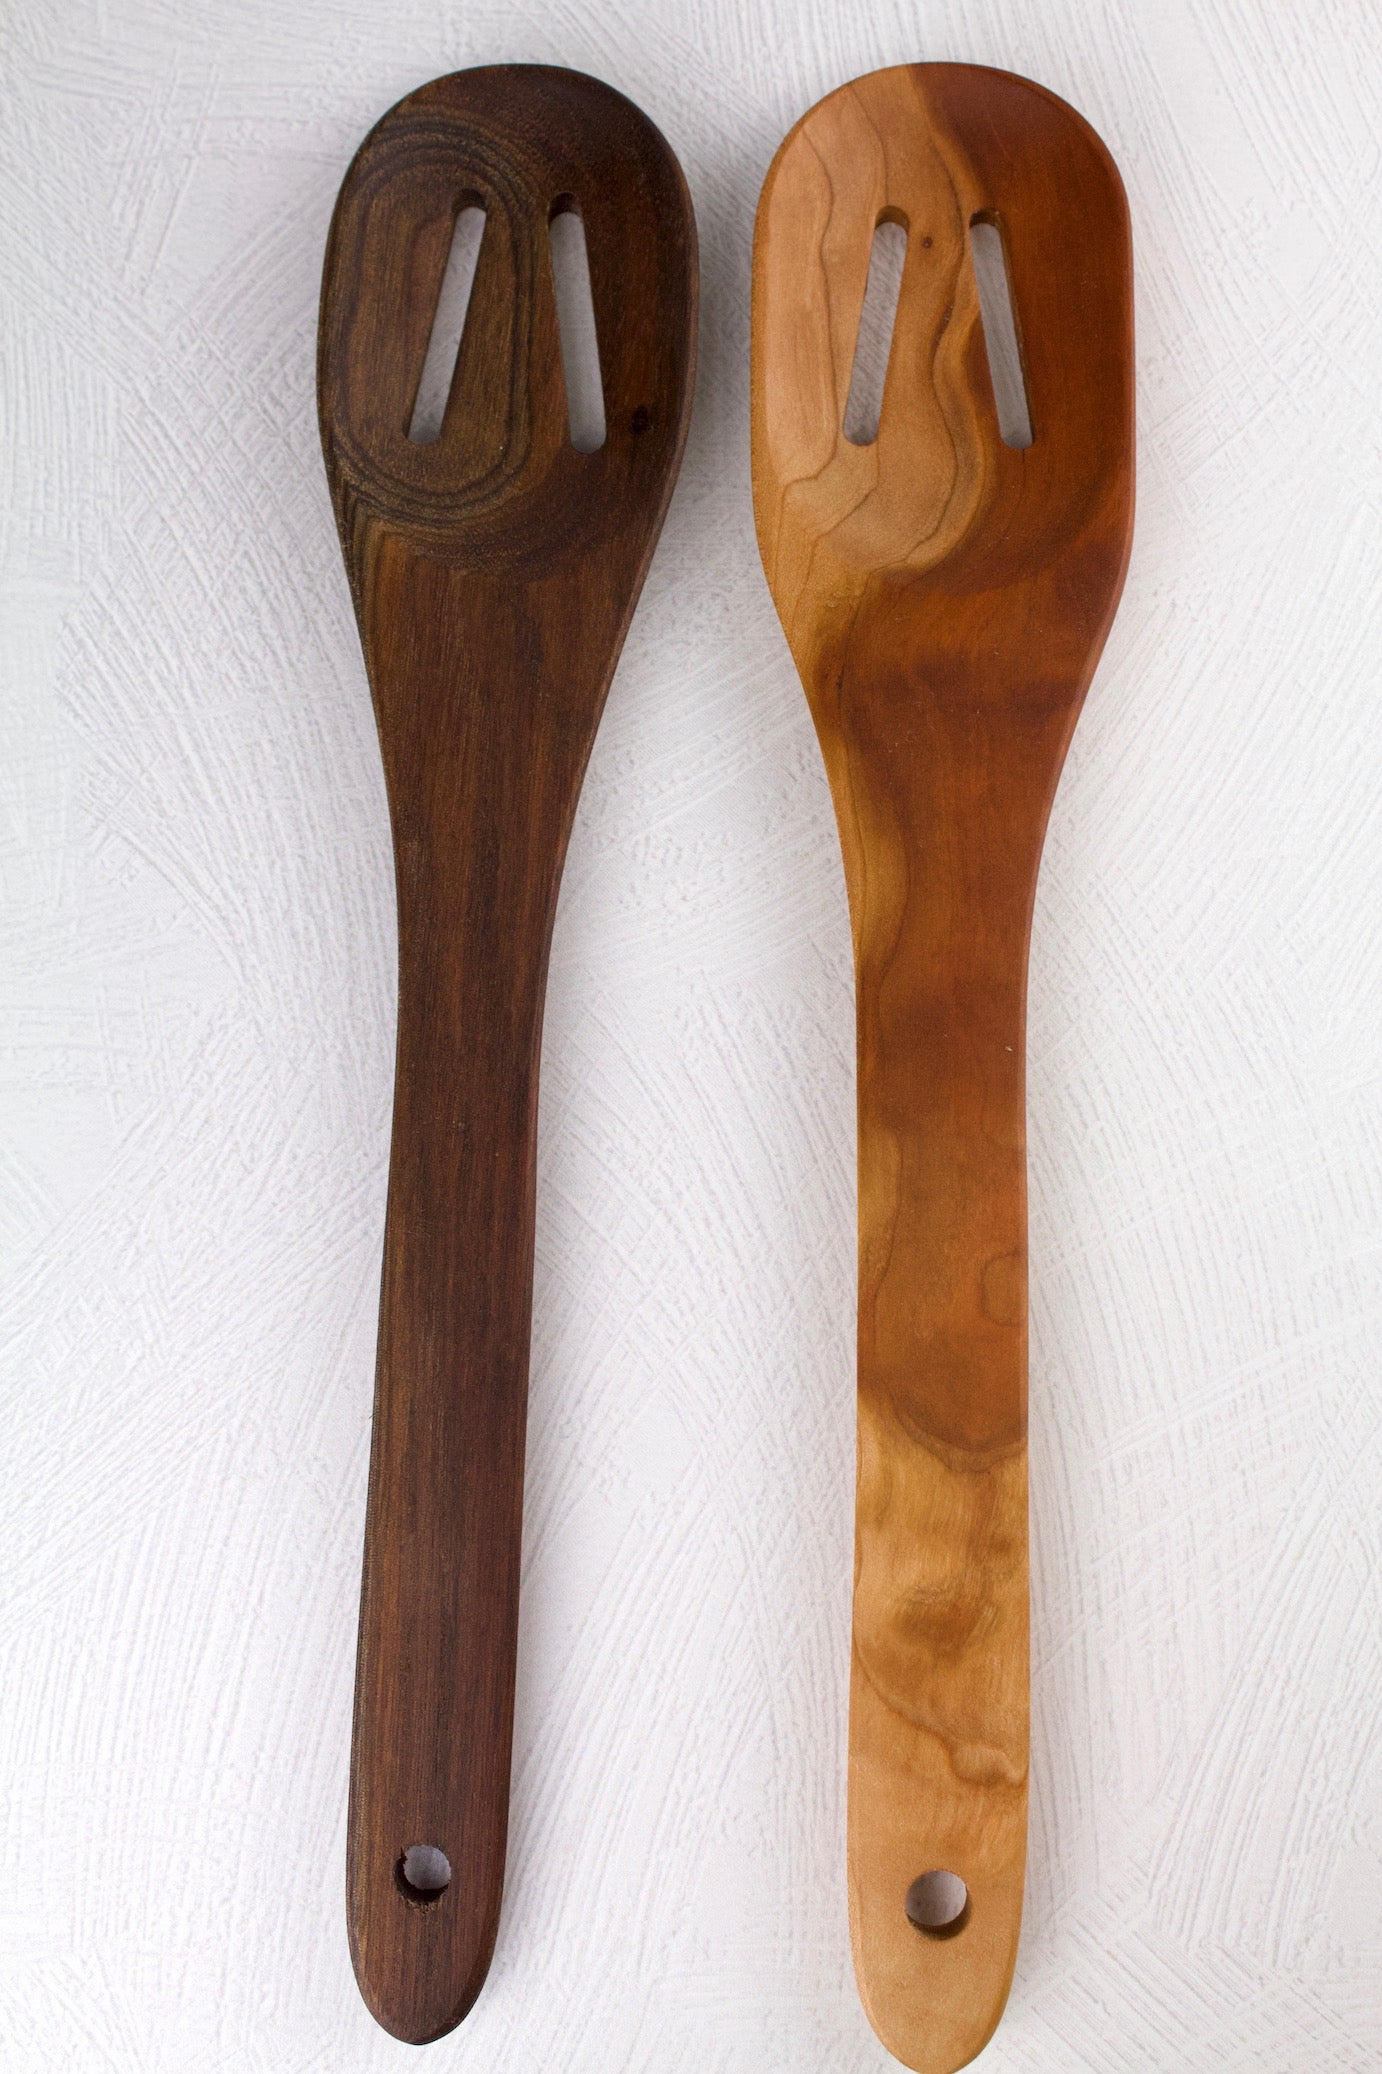 Slotted Everyday Spoon